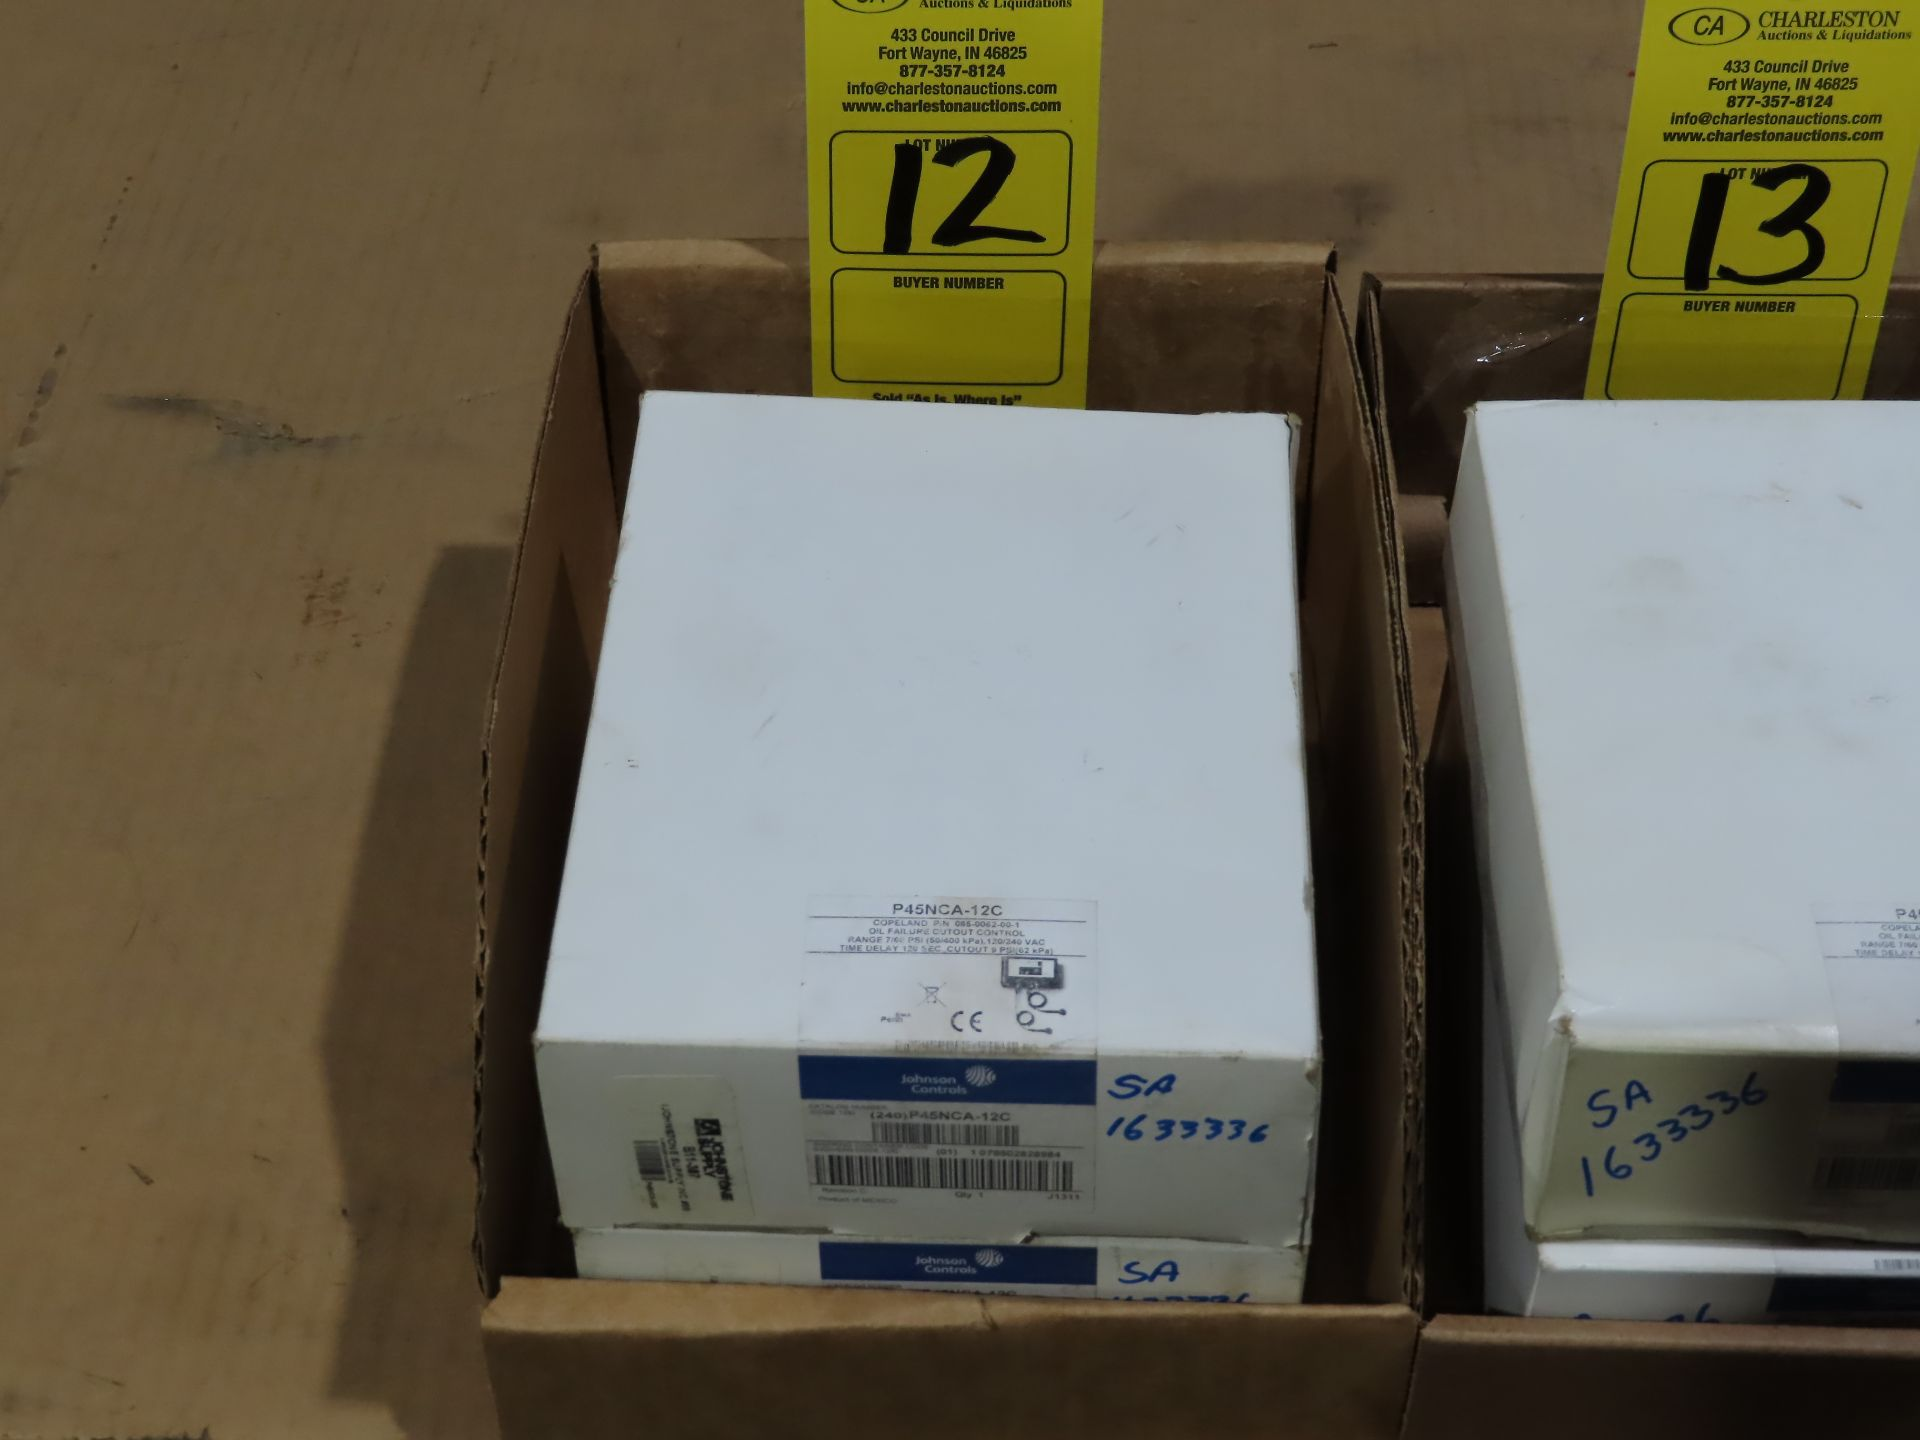 Lot 12 - Qty 2 Johnson Controls model P45NCA-12C, new in boxes, as always, with Brolyn LLC auctions, all lots